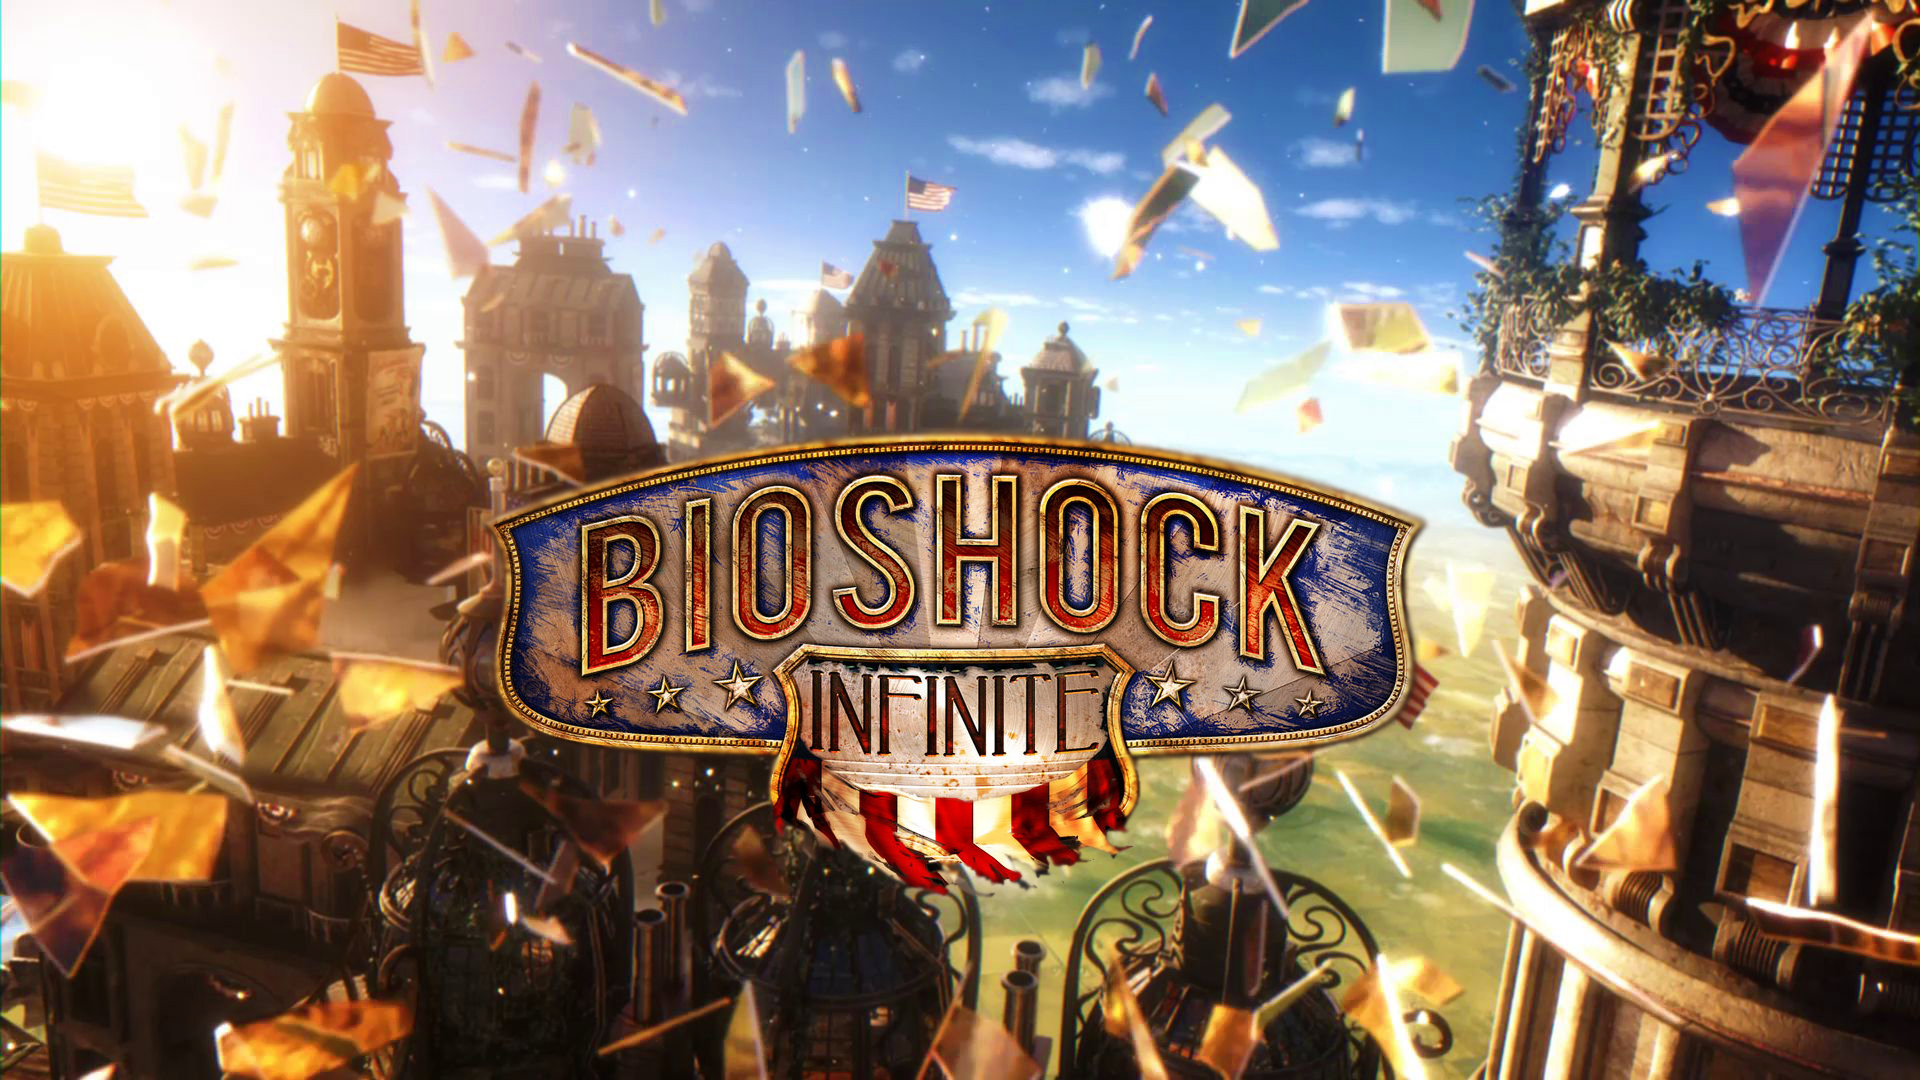 New Bioshock Infinite video shows pre-history of Columbia